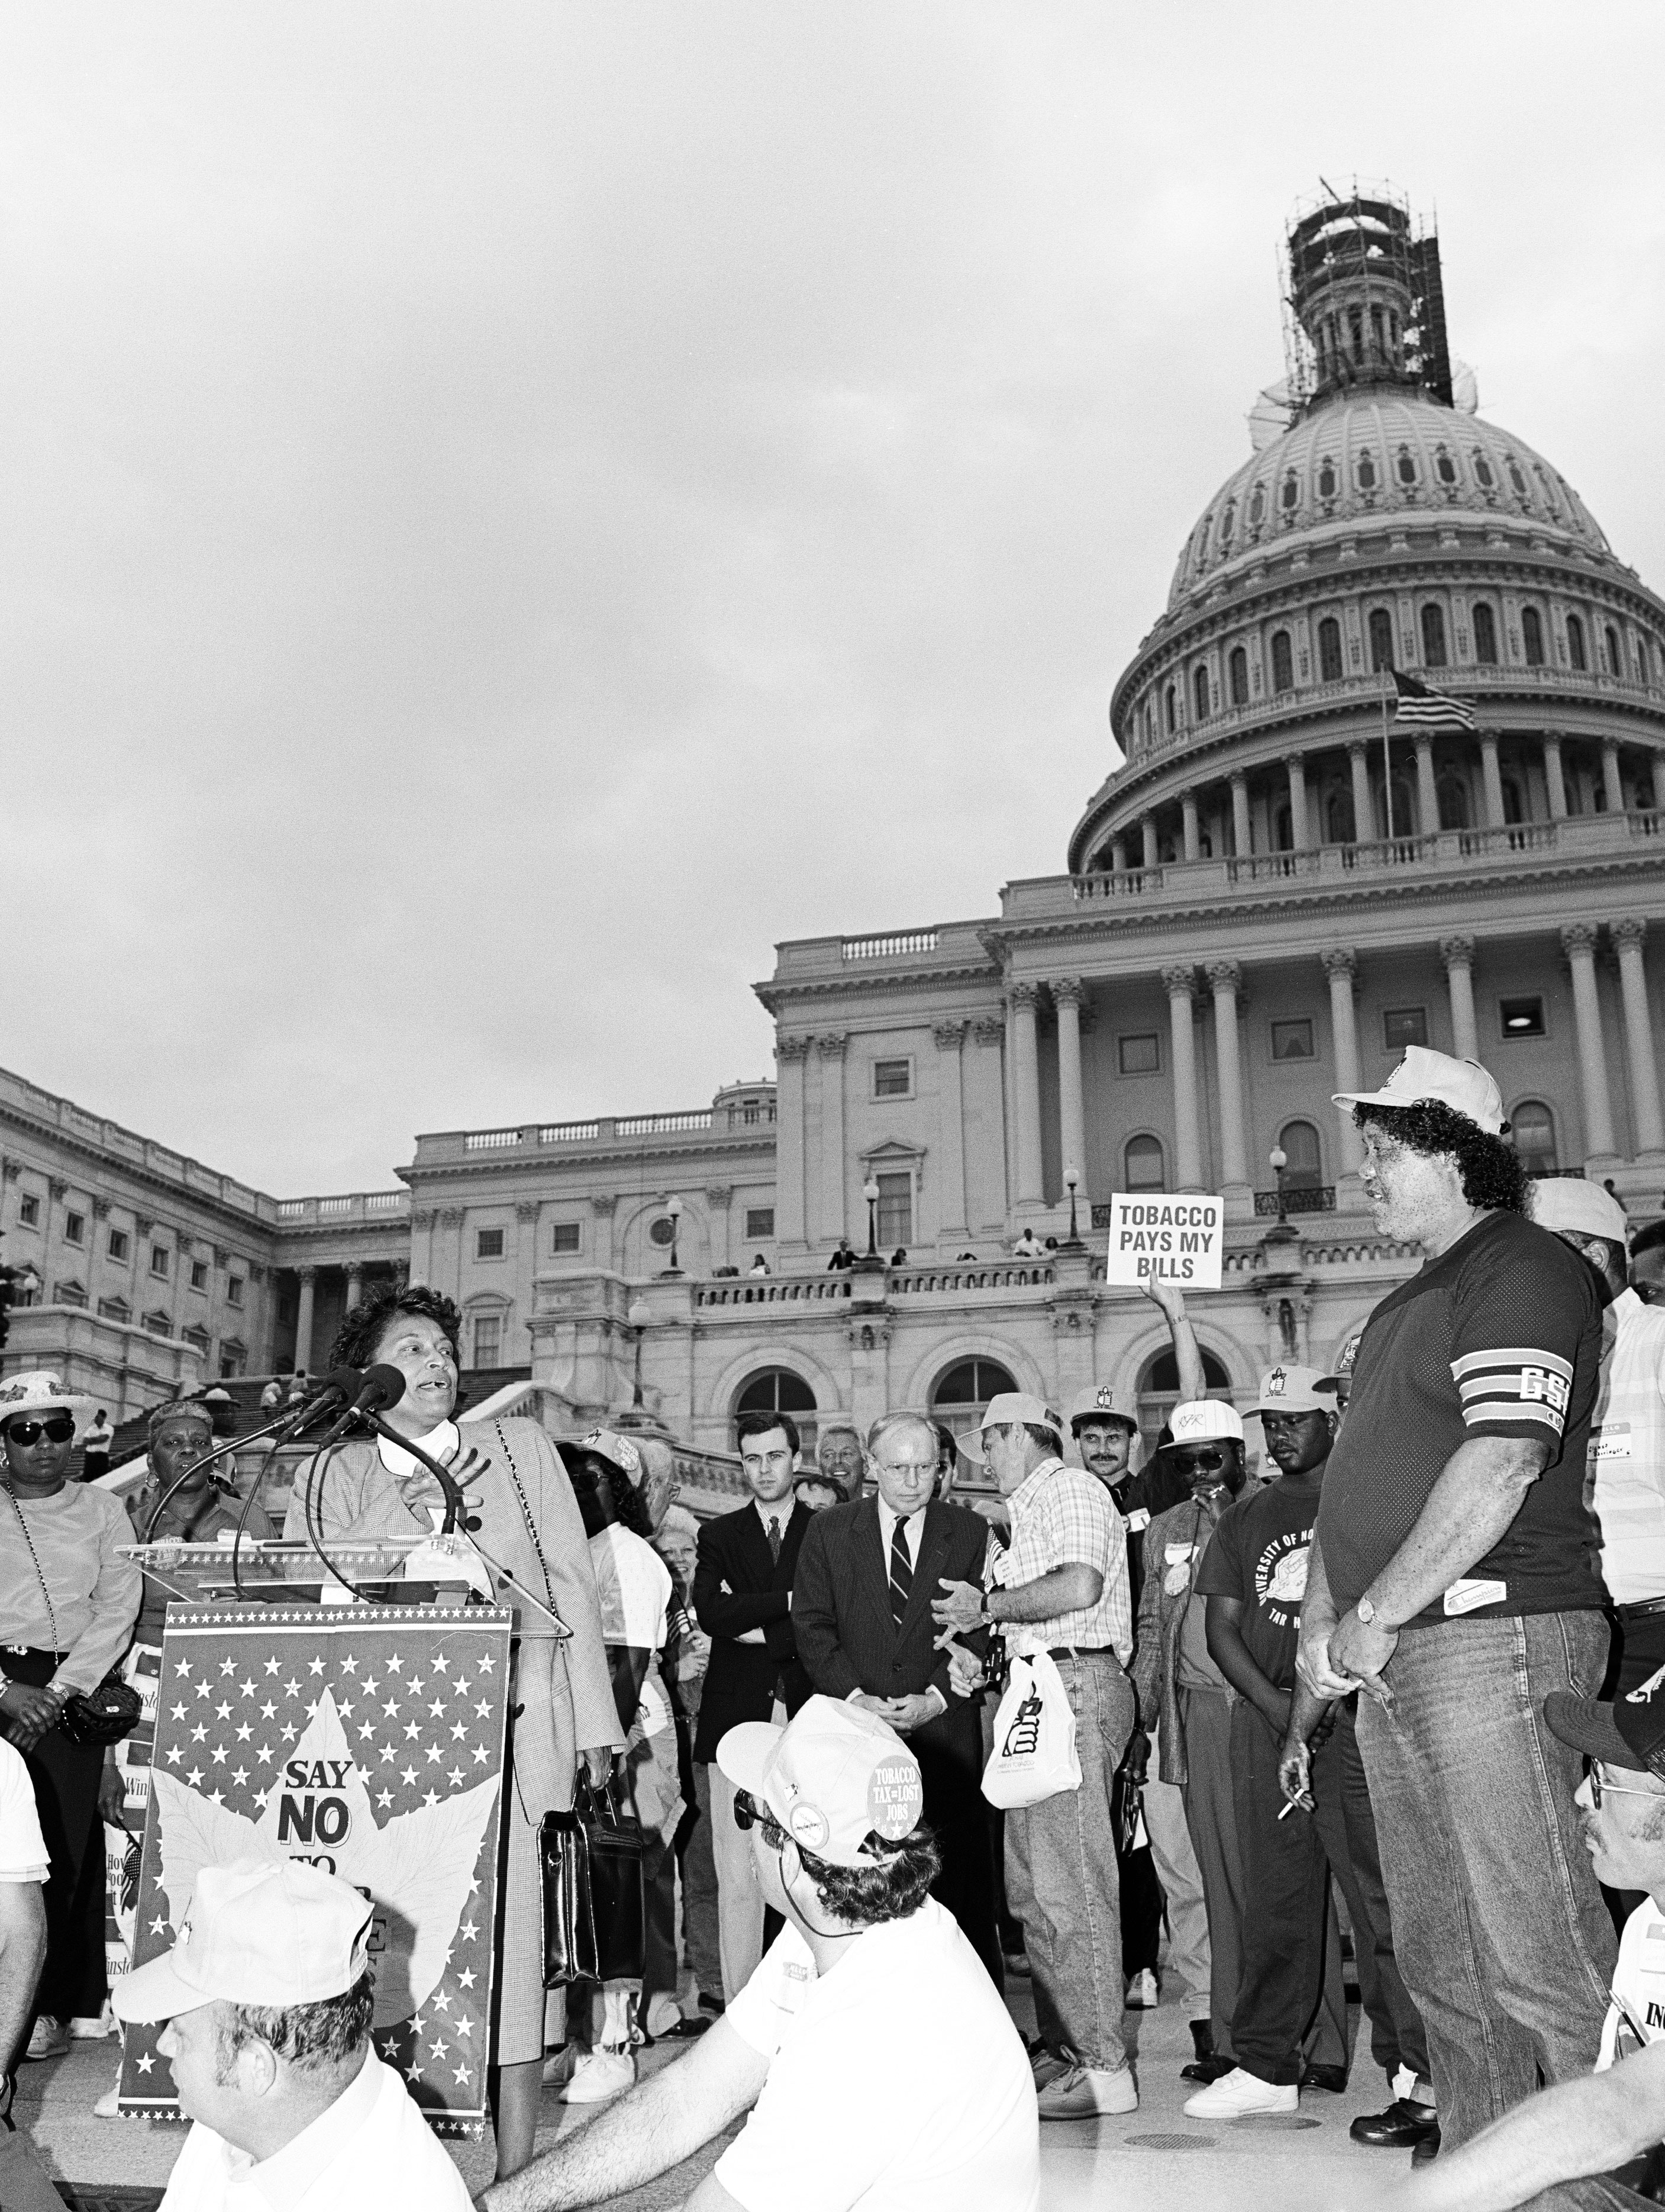 Obstacles and Opportunities: The Experiences of Two Women Members on the Campaign Trail   US House of Representatives: History, Art & Archives